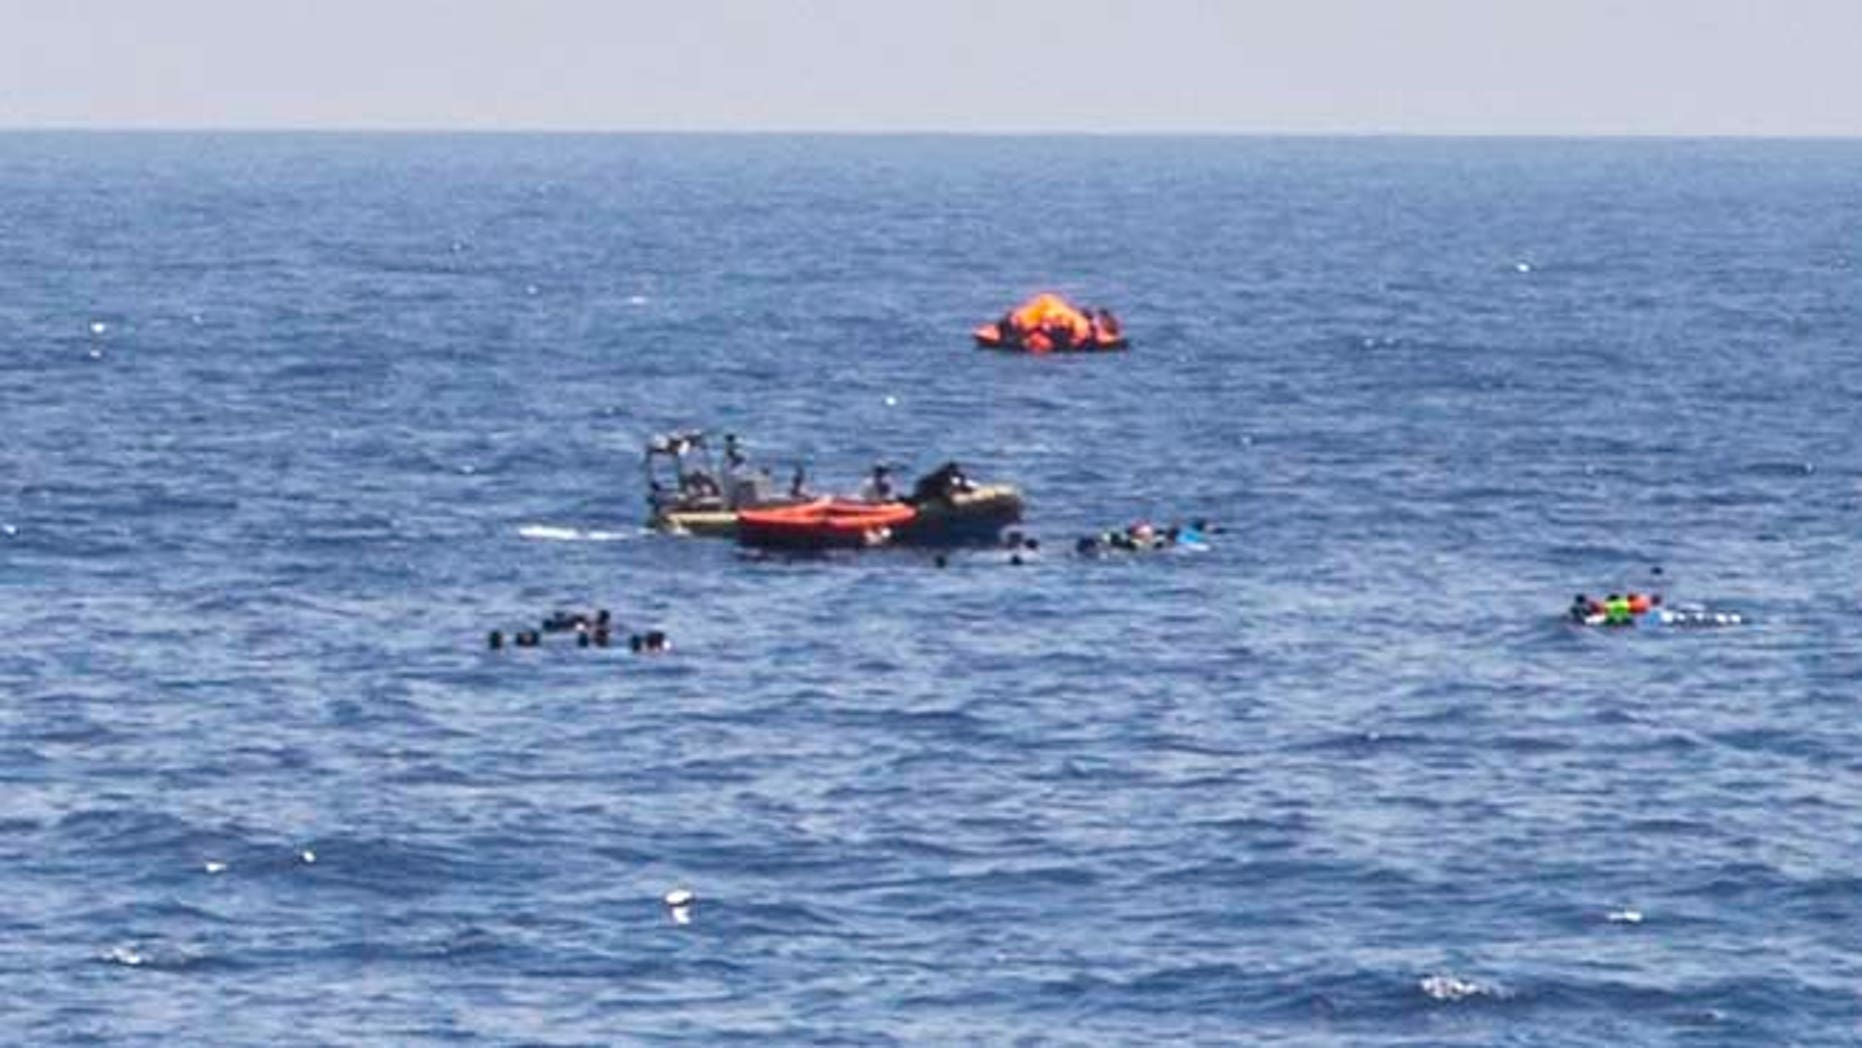 Aug. 5: The scene of the capsizing and sinking of a fishing boat crowded with migrants is seen from the deck of the Dignity I MSF search and rescue vessel which responded to the emergency in the Mediterranean sea off Libya.